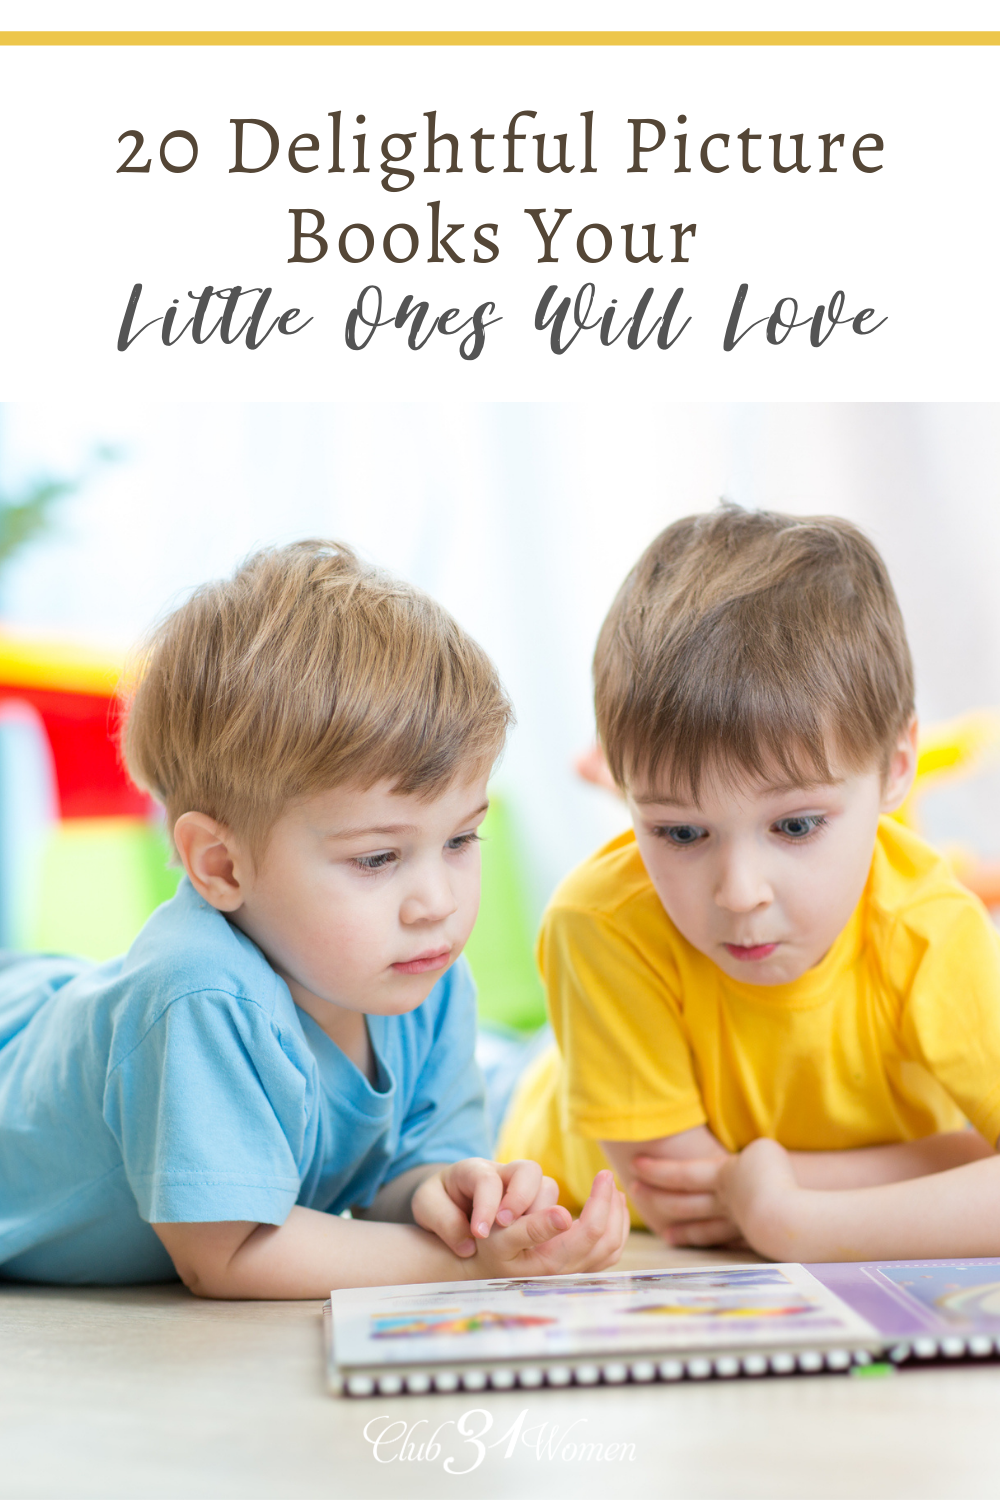 Round up your littles and stack up on these delightful picture books to read together! They are sure to engage your littles! via @Club31Women